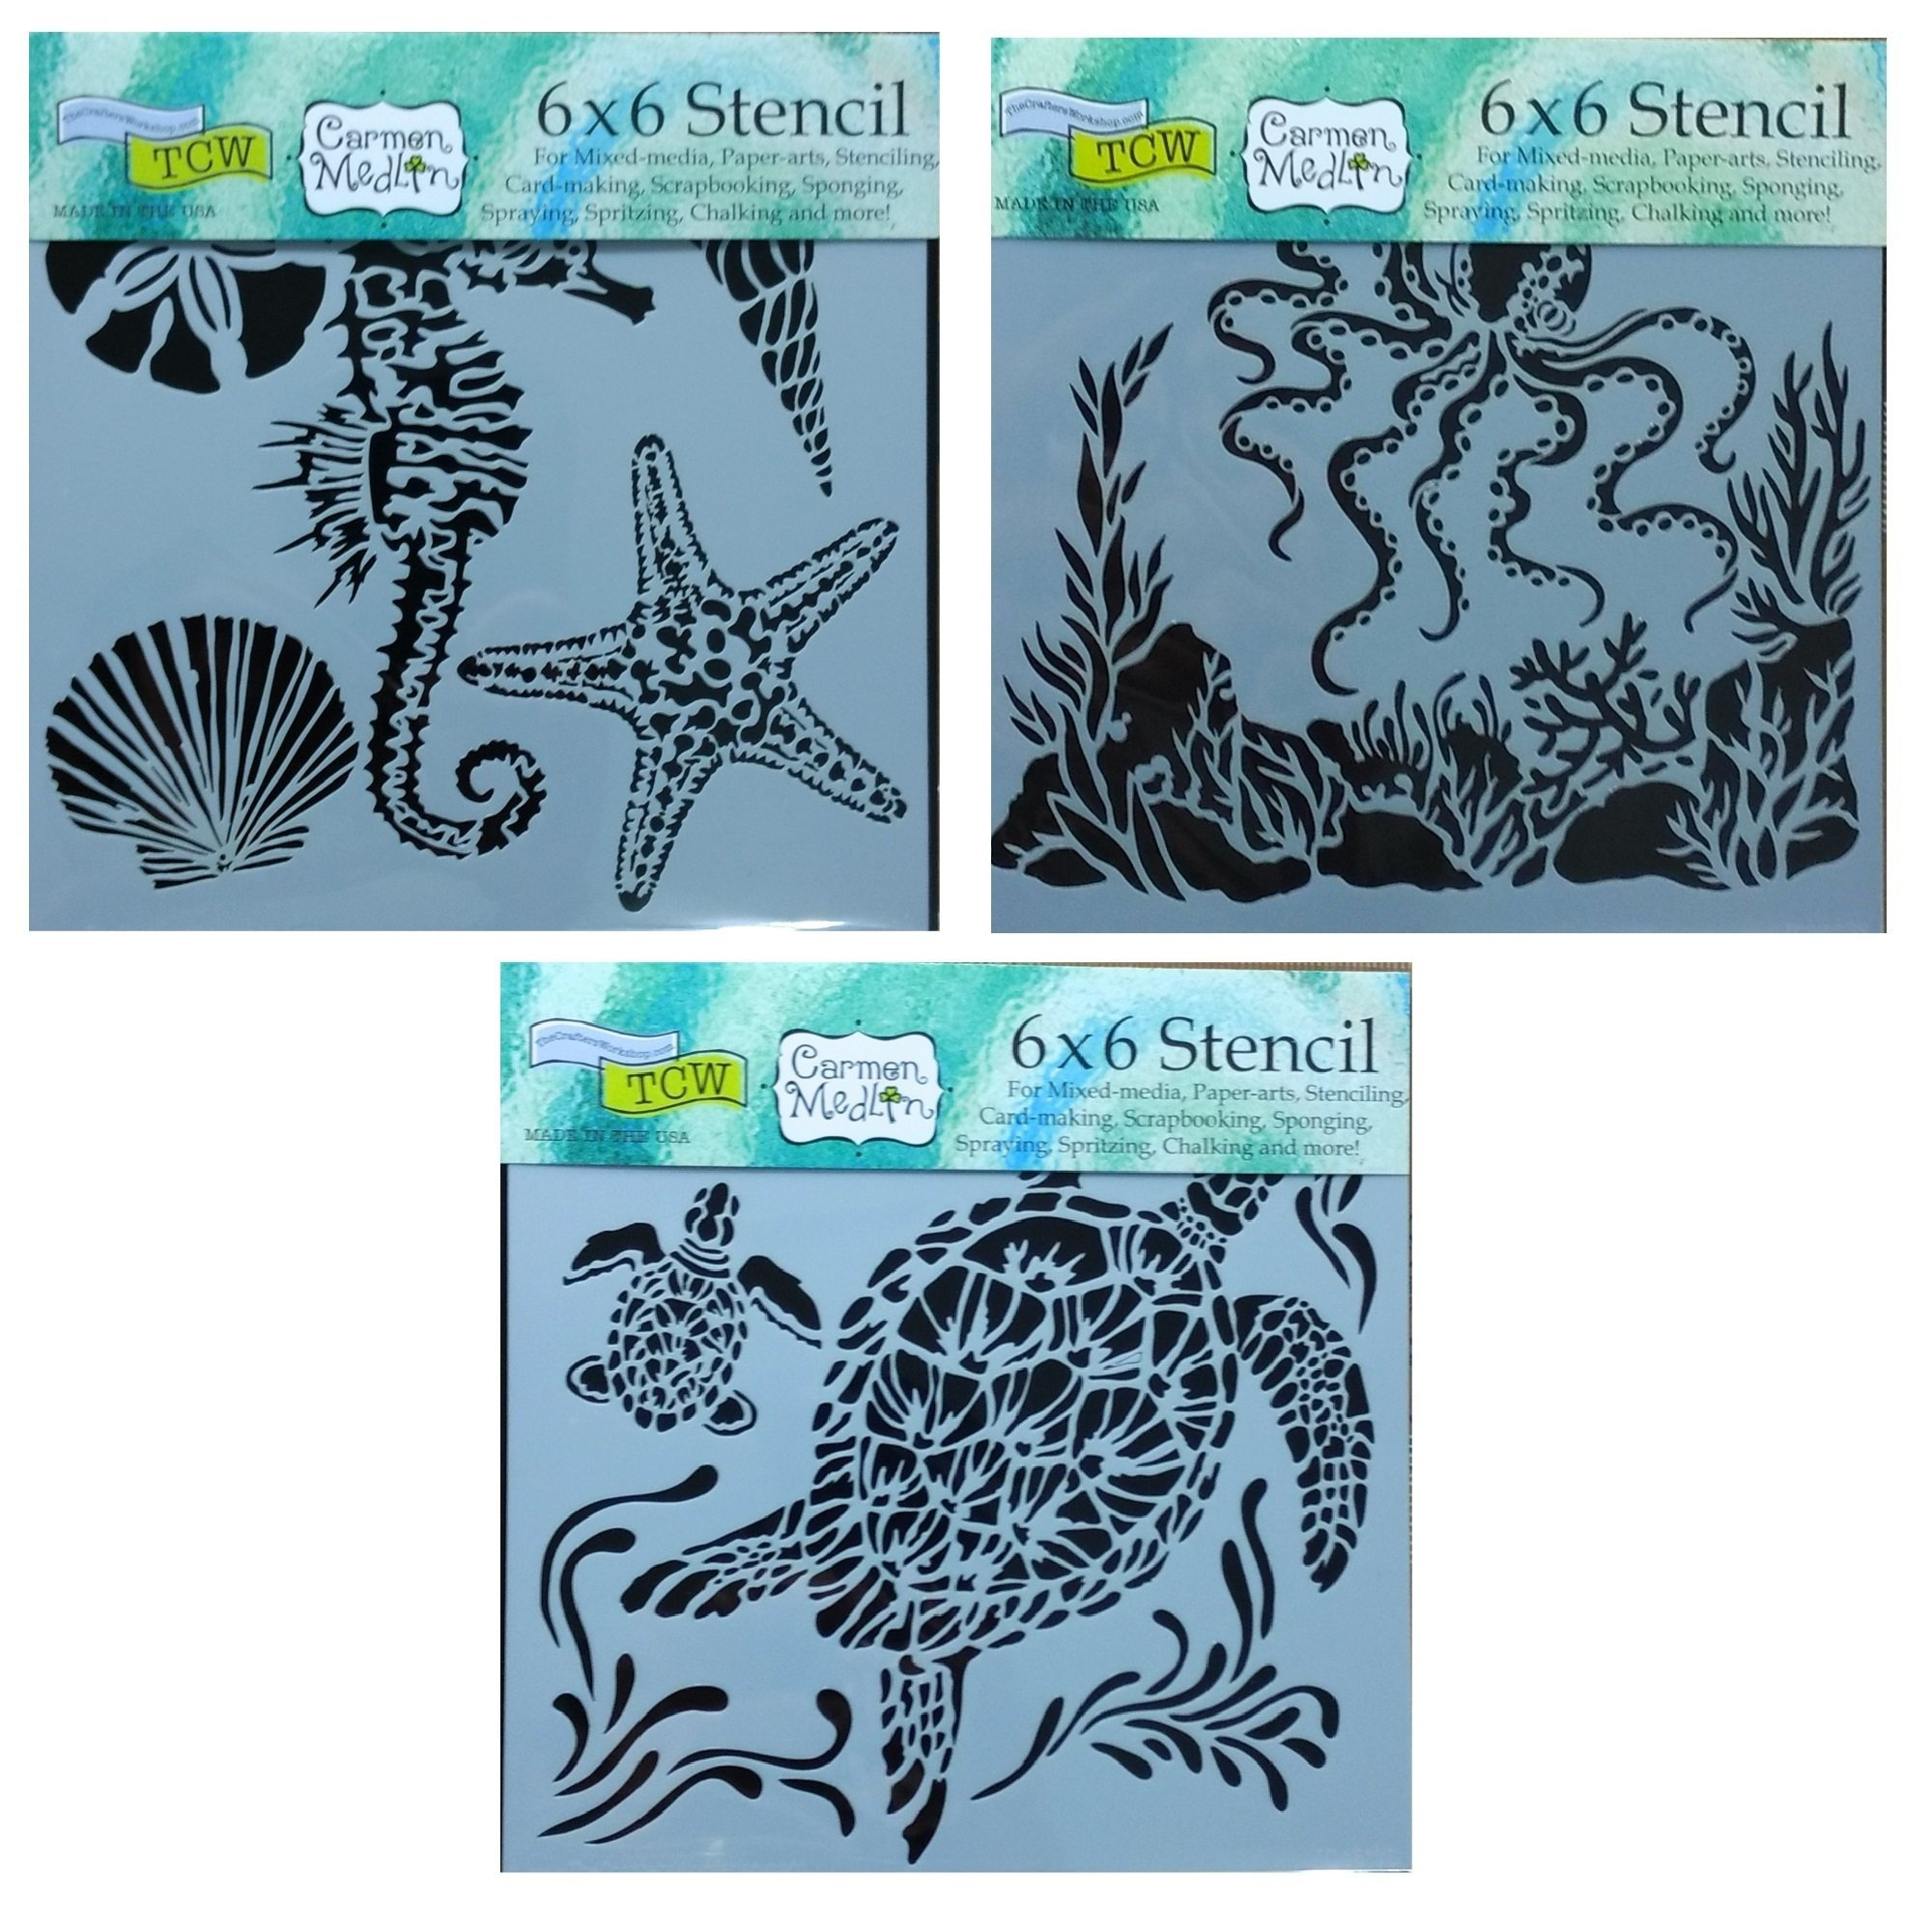 3 Crafters Workshop Mixed Media Stencils Set| for Arts, Card Making, Journaling, Scrapbooking | 6 Inch x 6 Inch Templates | Sea Creatures, Octopus, Sea Turtles by The Crafter's Workshop